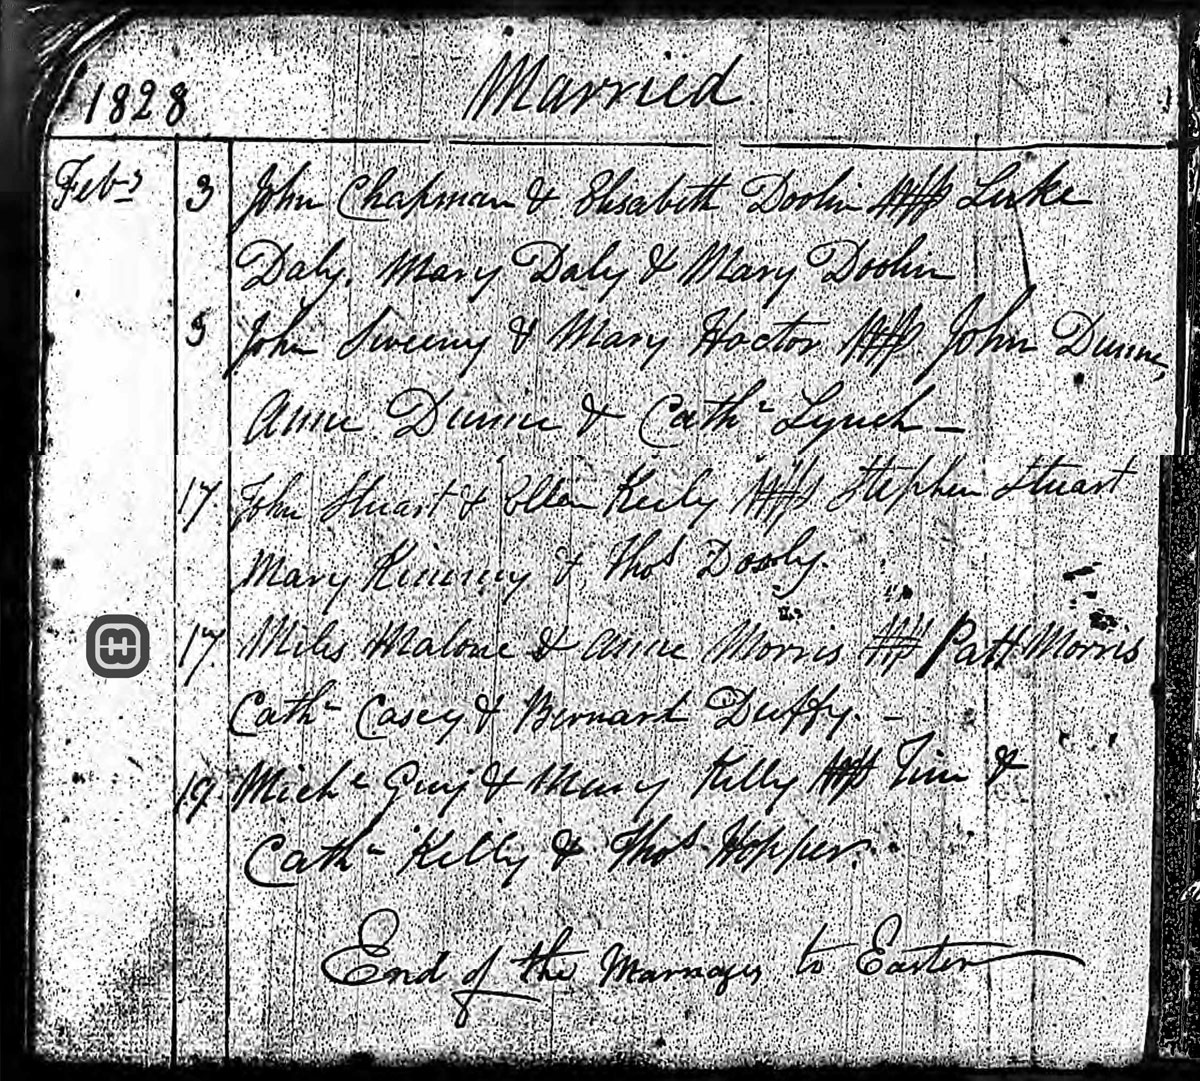 This document shows the marriage of Miles Malone and Anne Morris in 1828, it has been cropped.